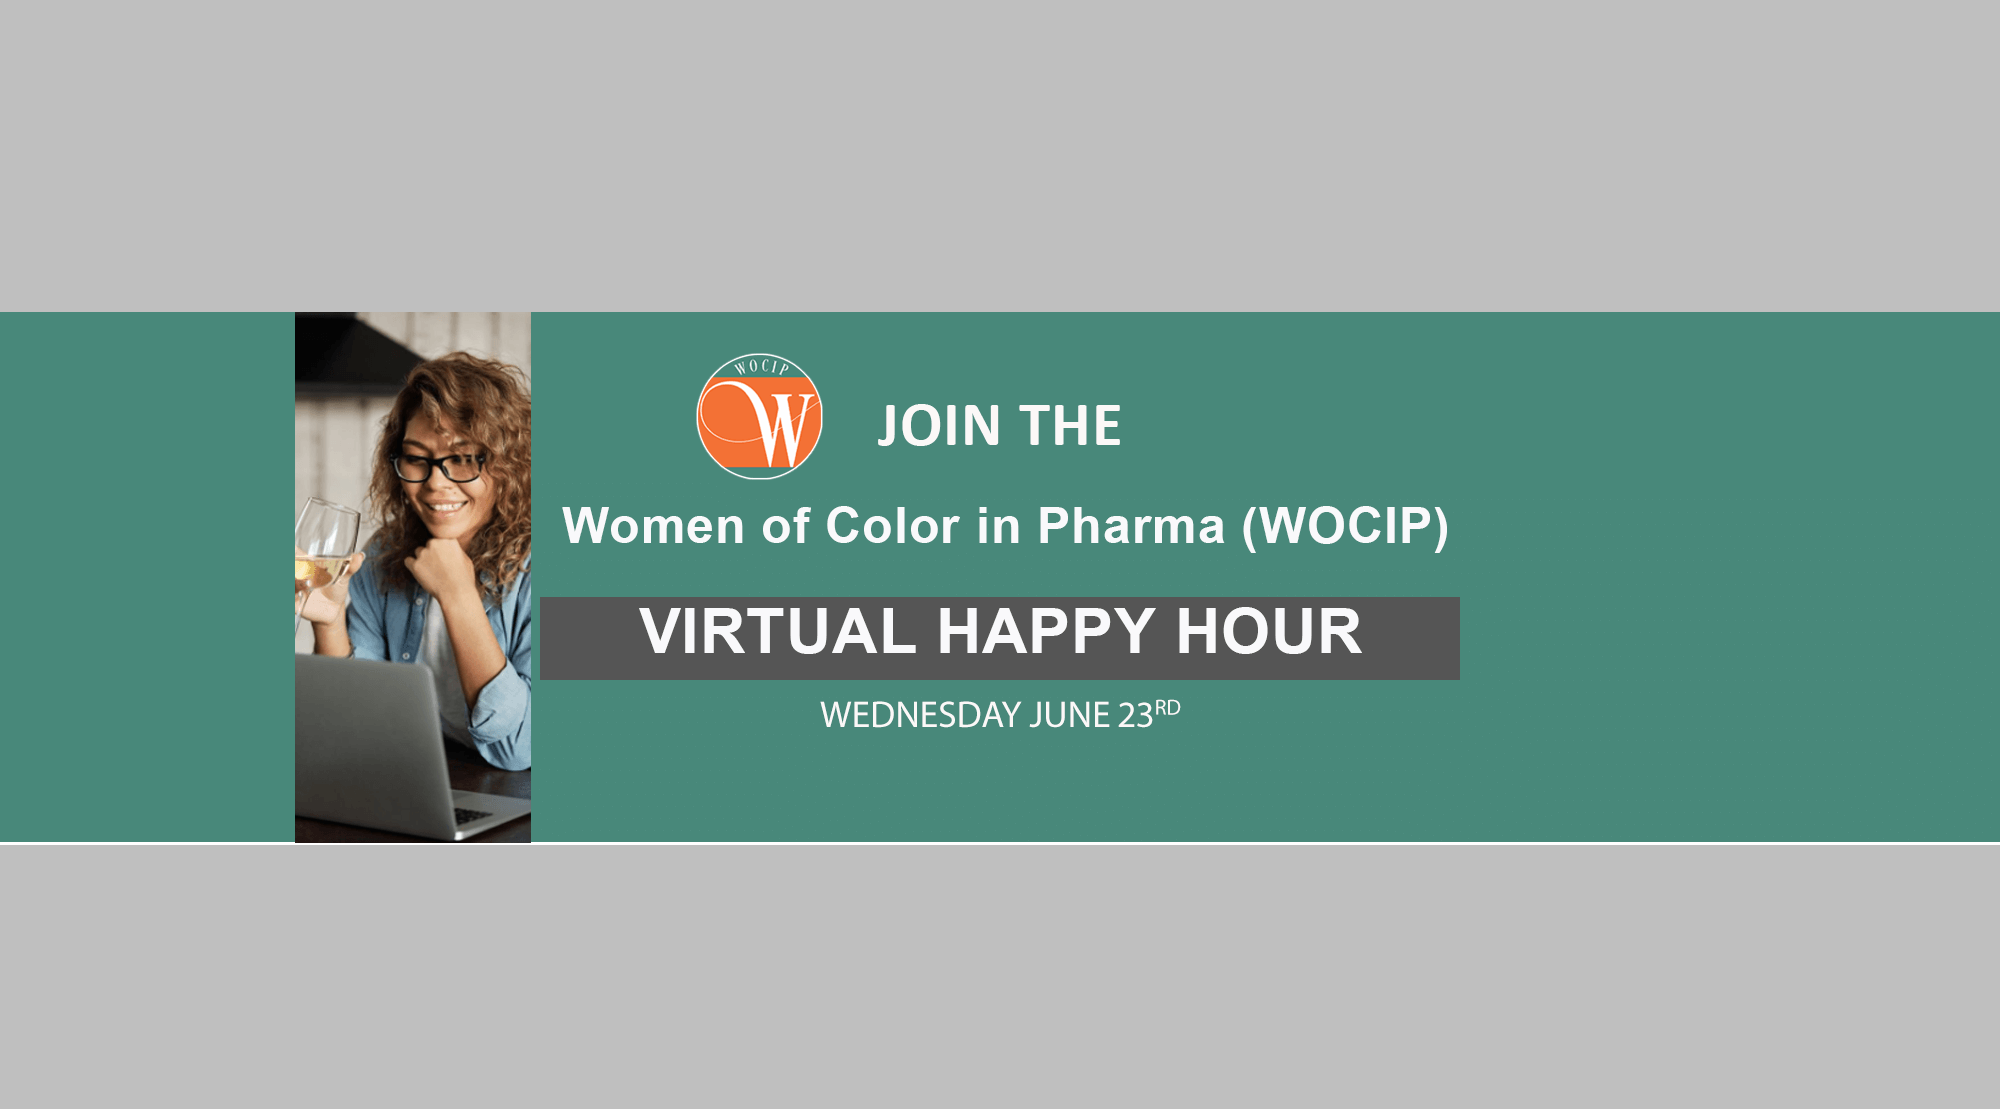 Women of Color in Pharma (WOCIP) for a Virtual Happy Hour